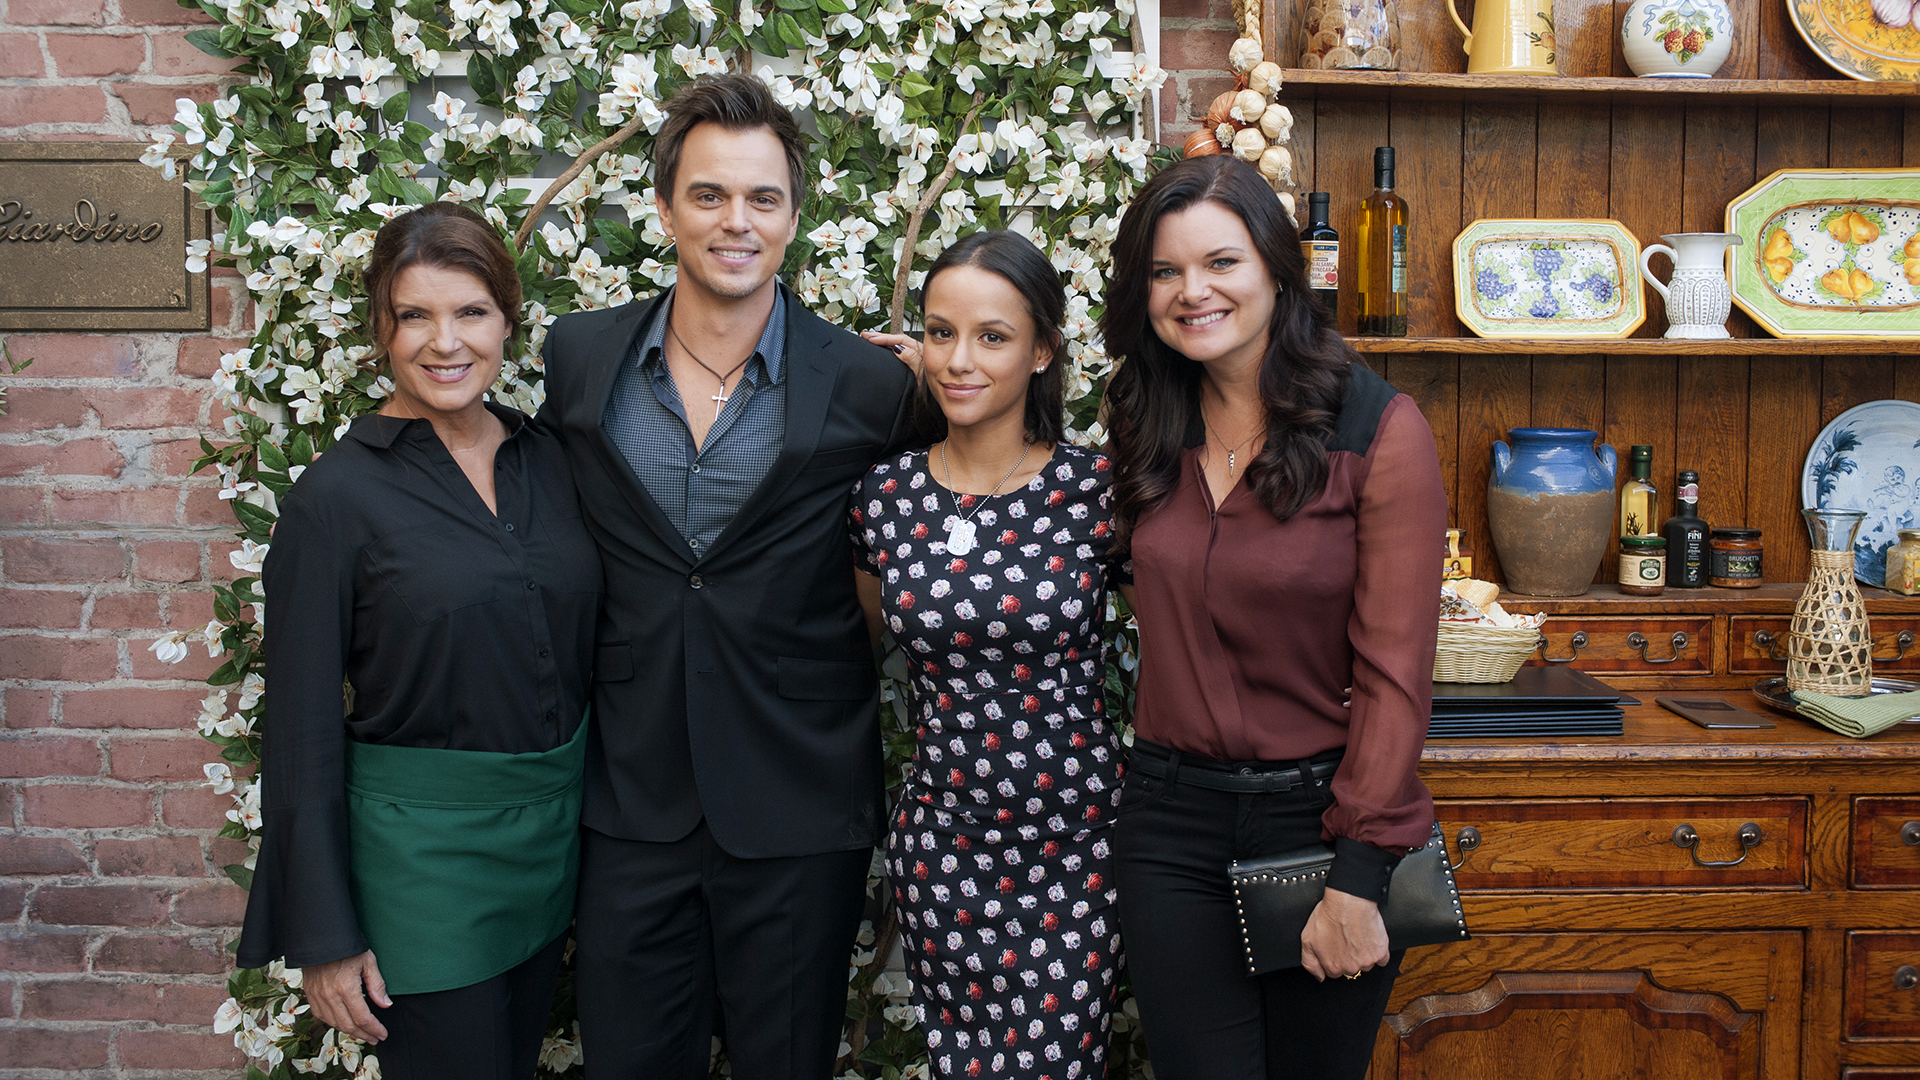 Jessica Graf with The Bold and the Beautiful actors Kimberlin Brown, Darin Brooks, and Heather Tom.